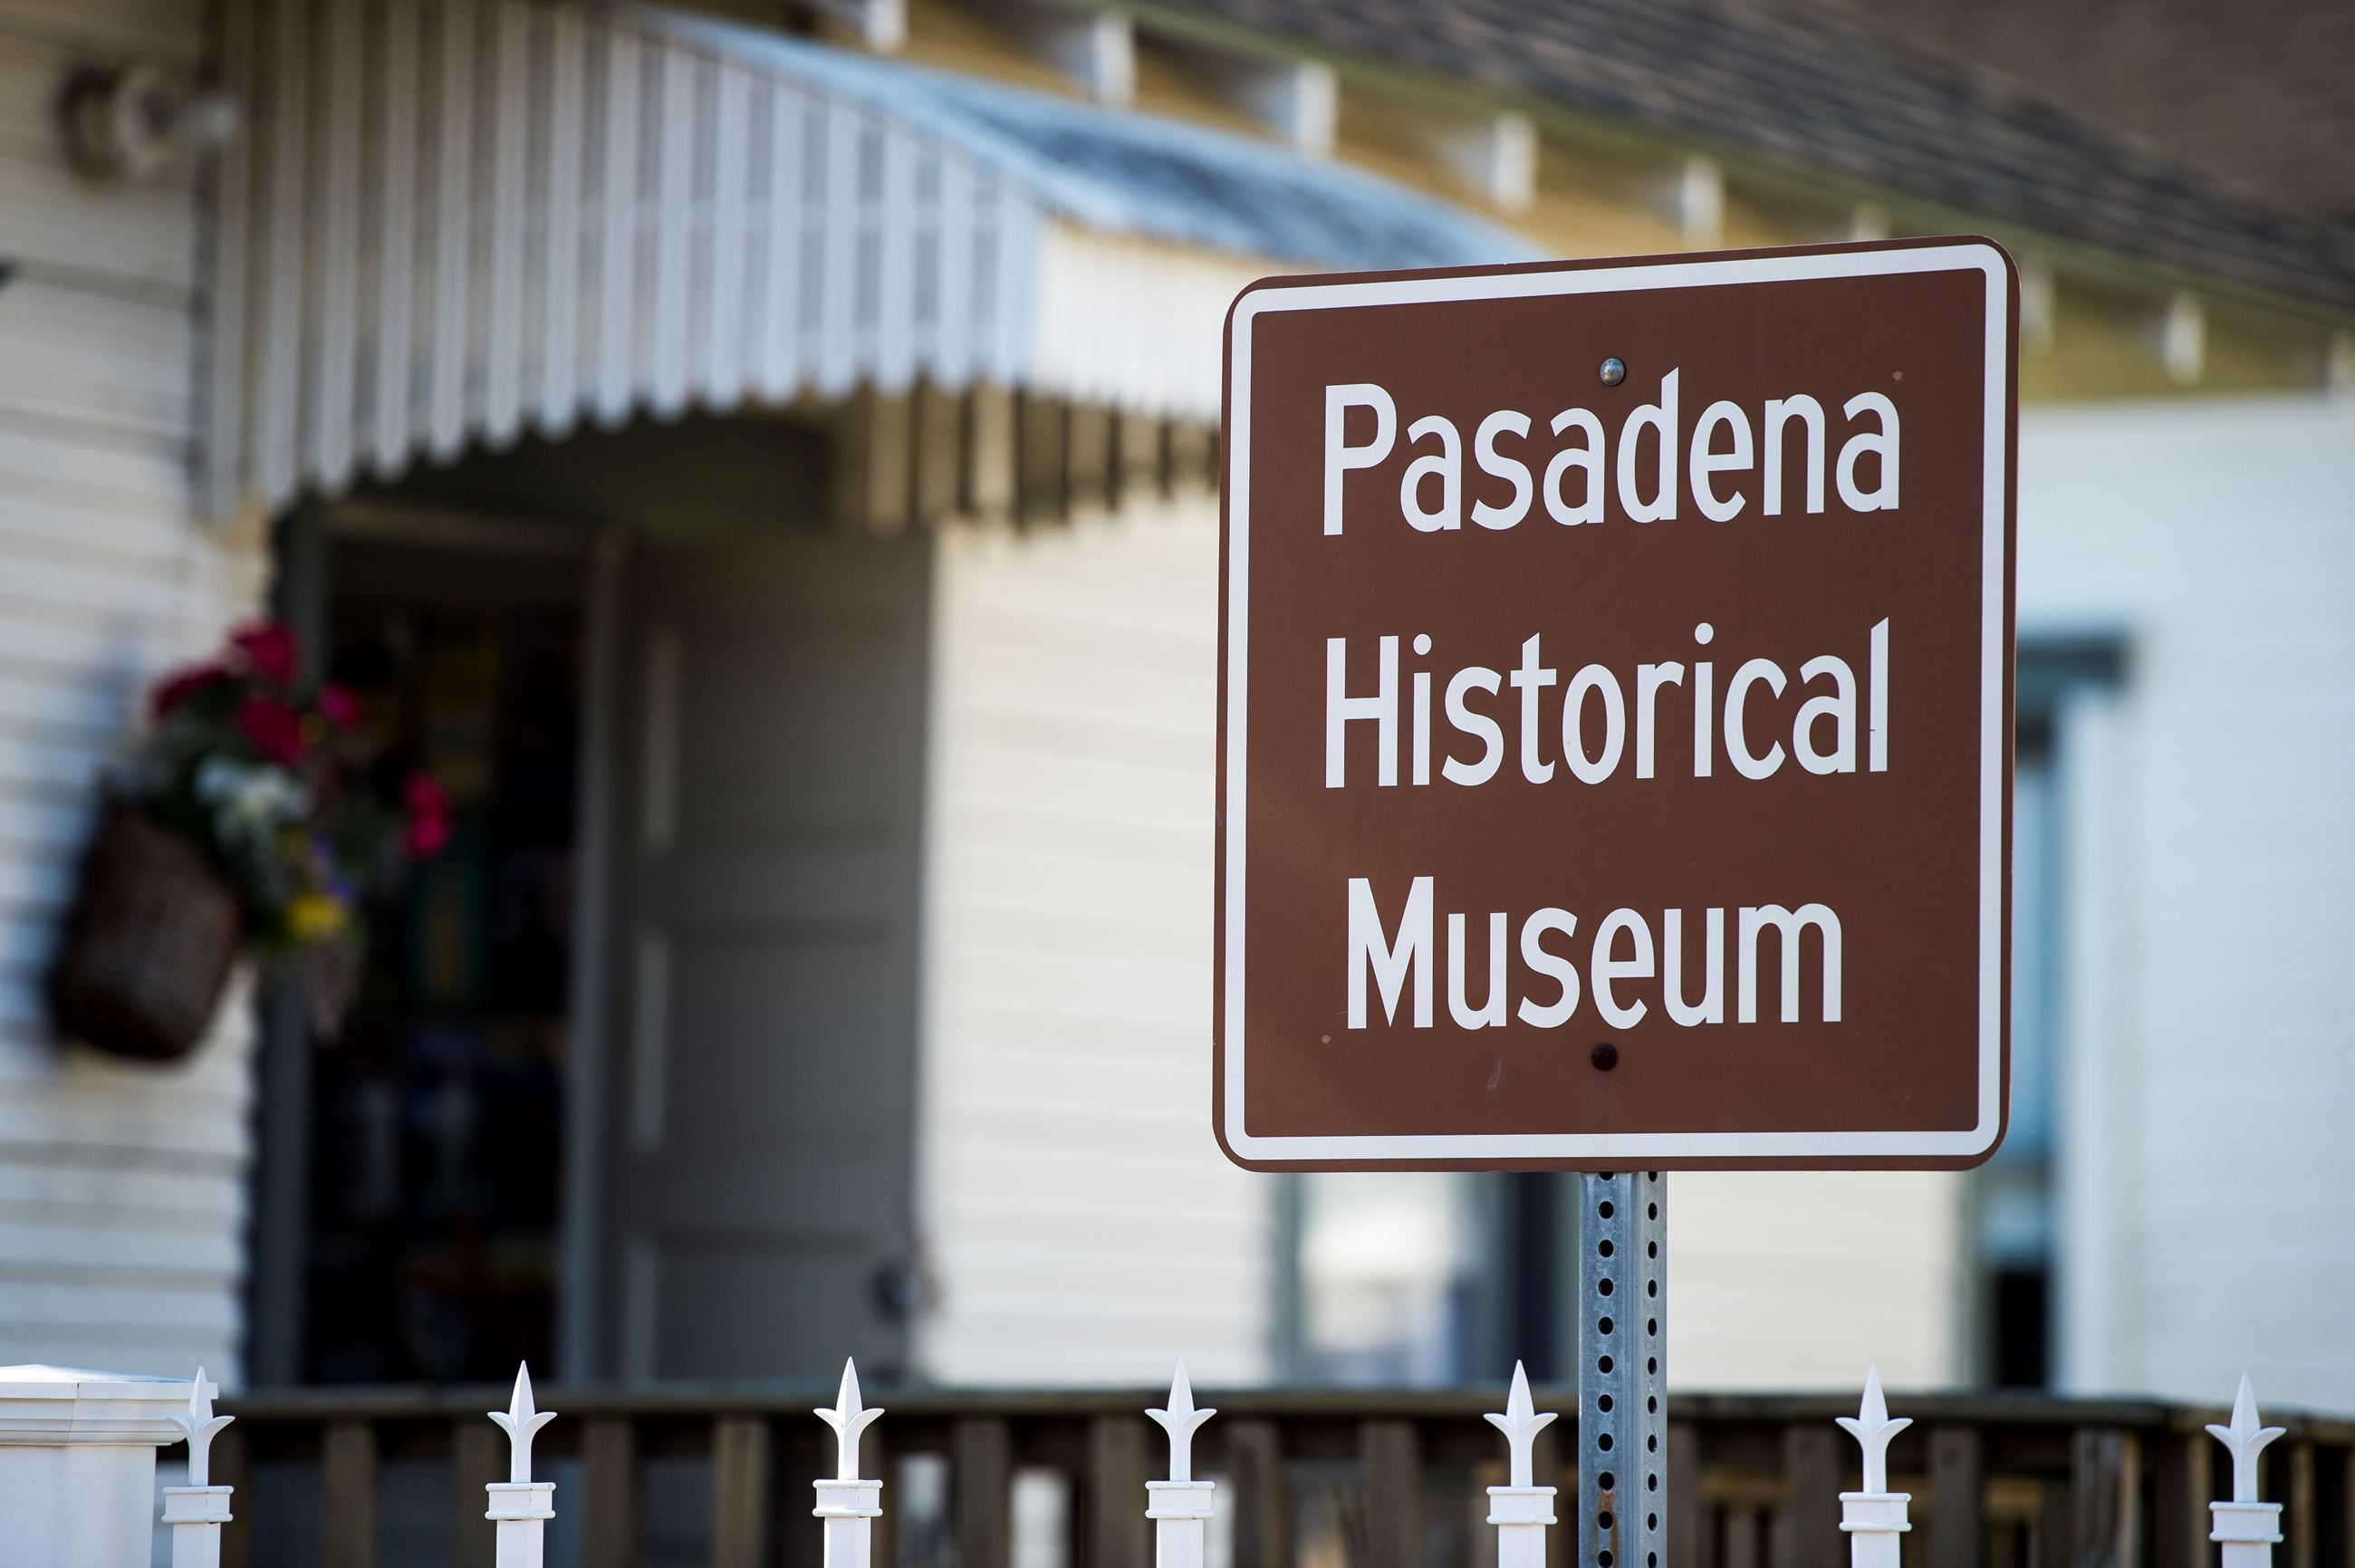 Sign for Pasadena Historical Museum